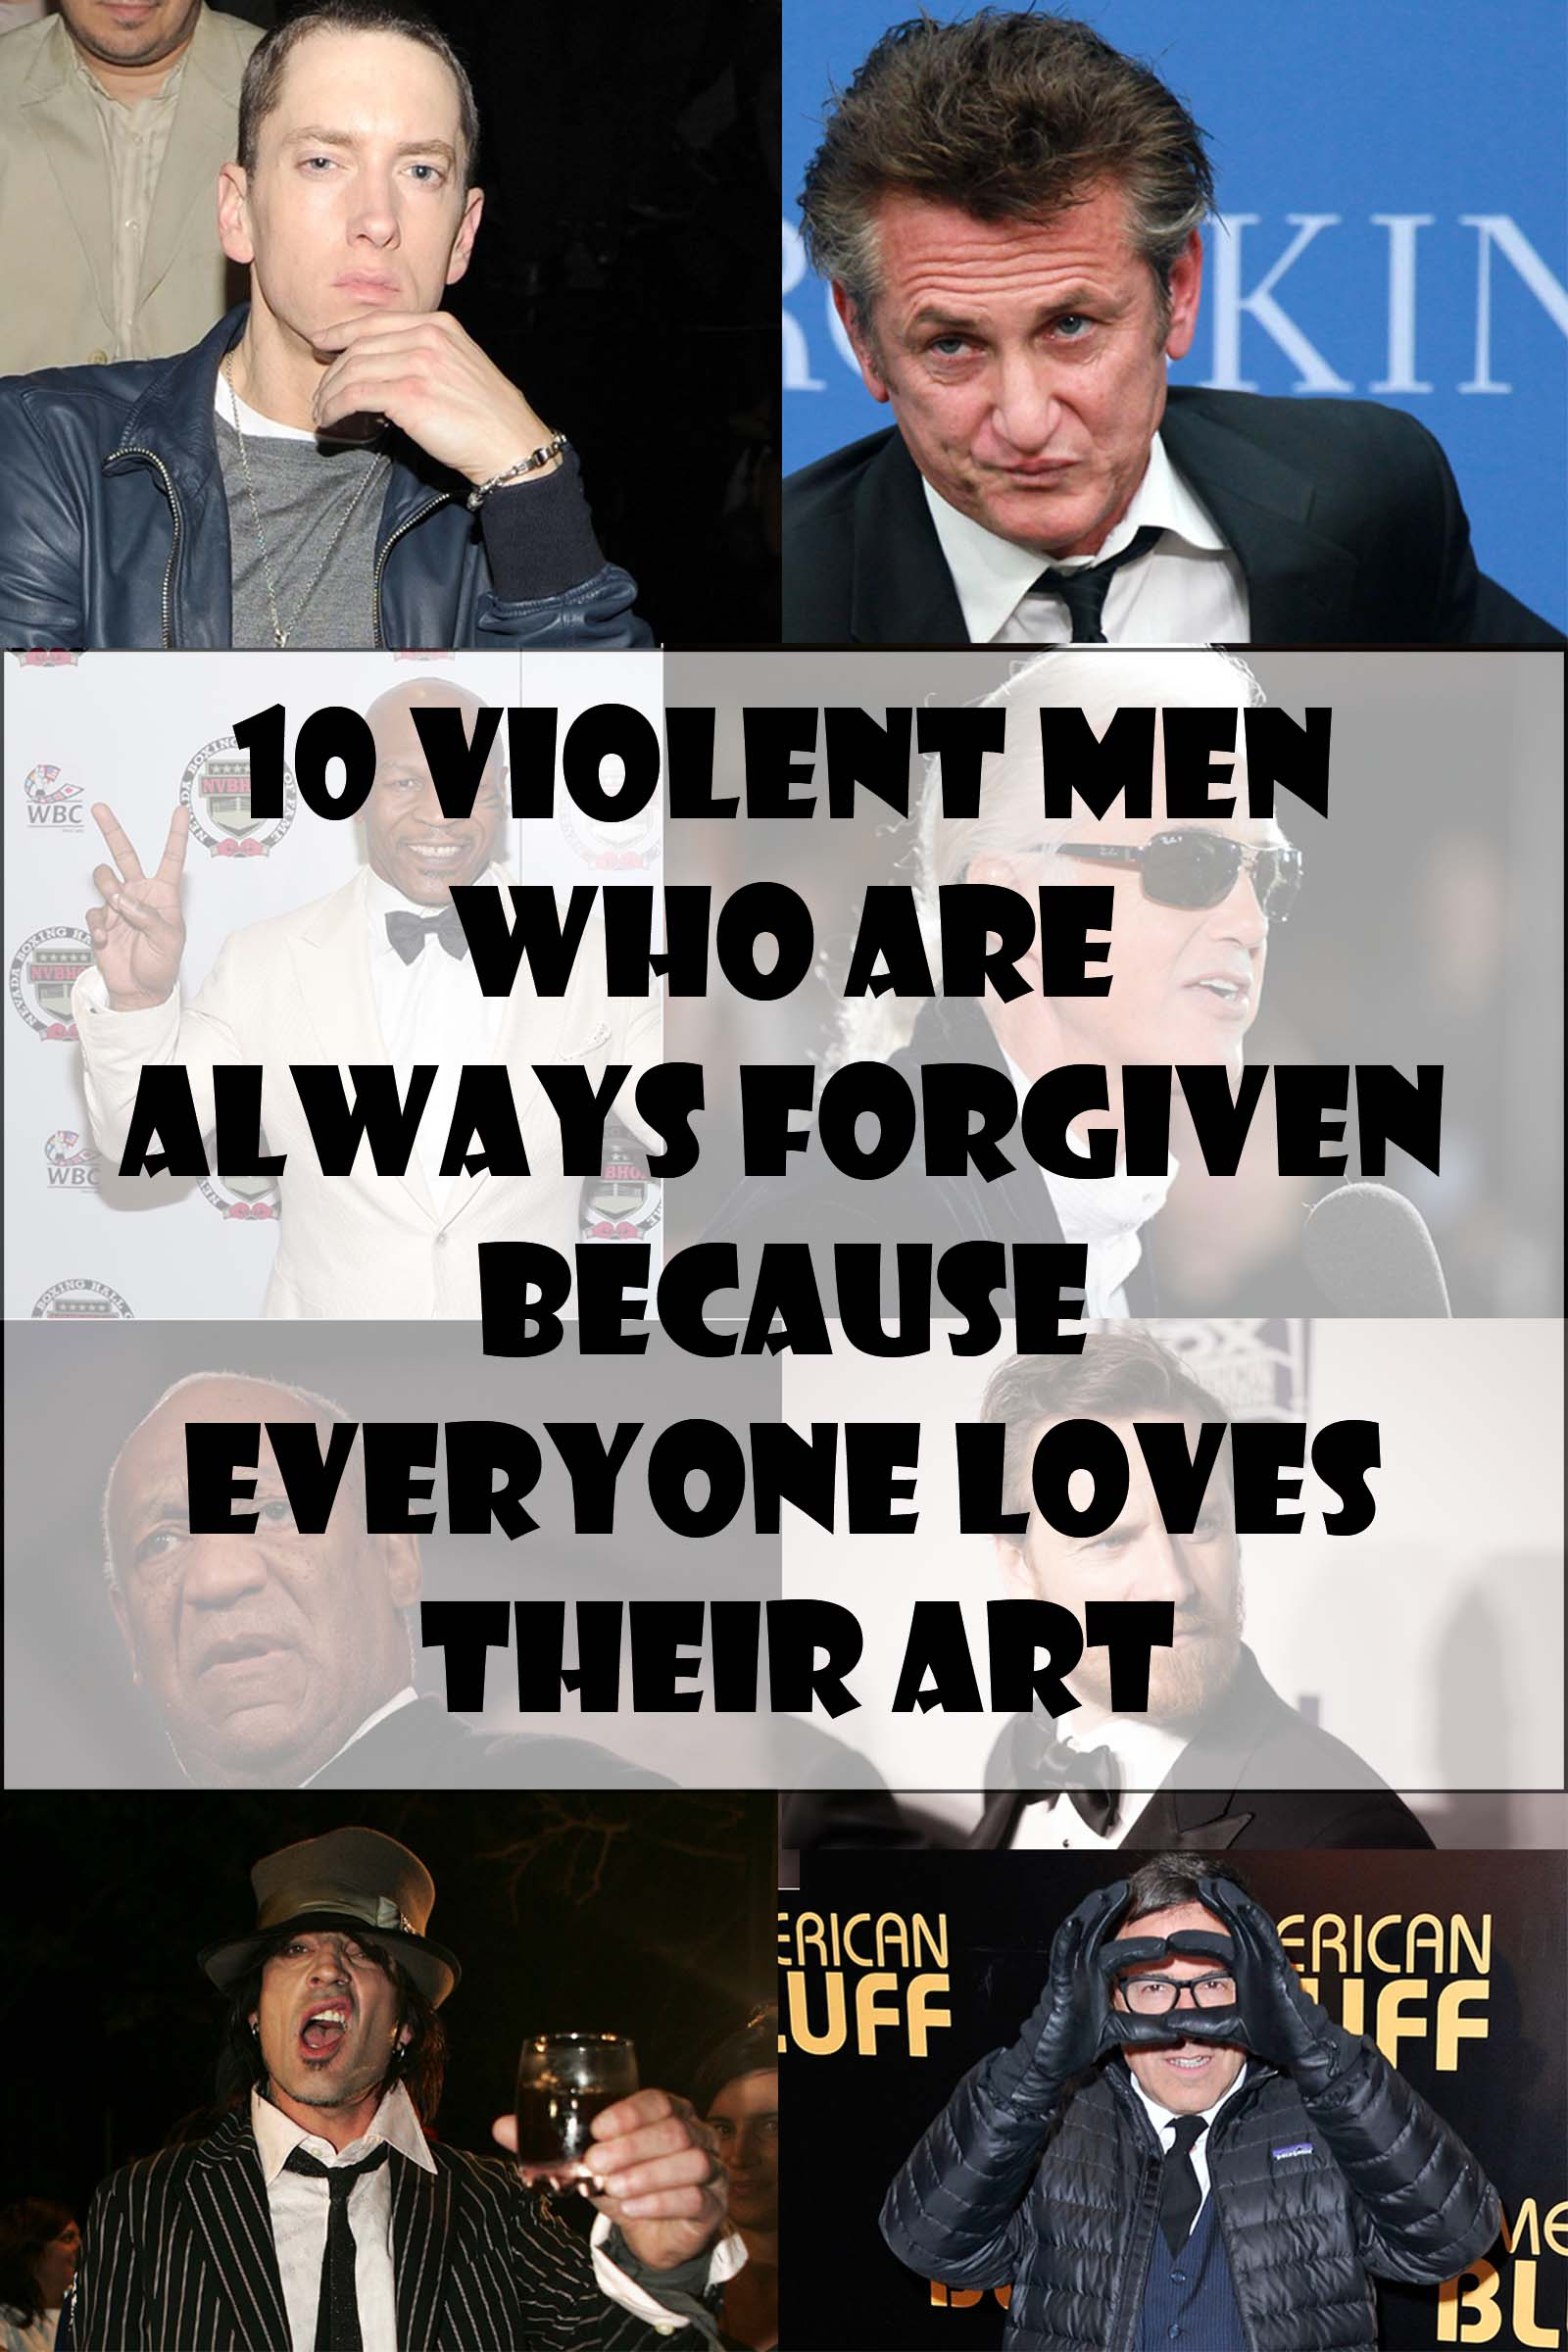 10 Violent Men Who Are Always Forgiven Because Everyone Loves Their Art